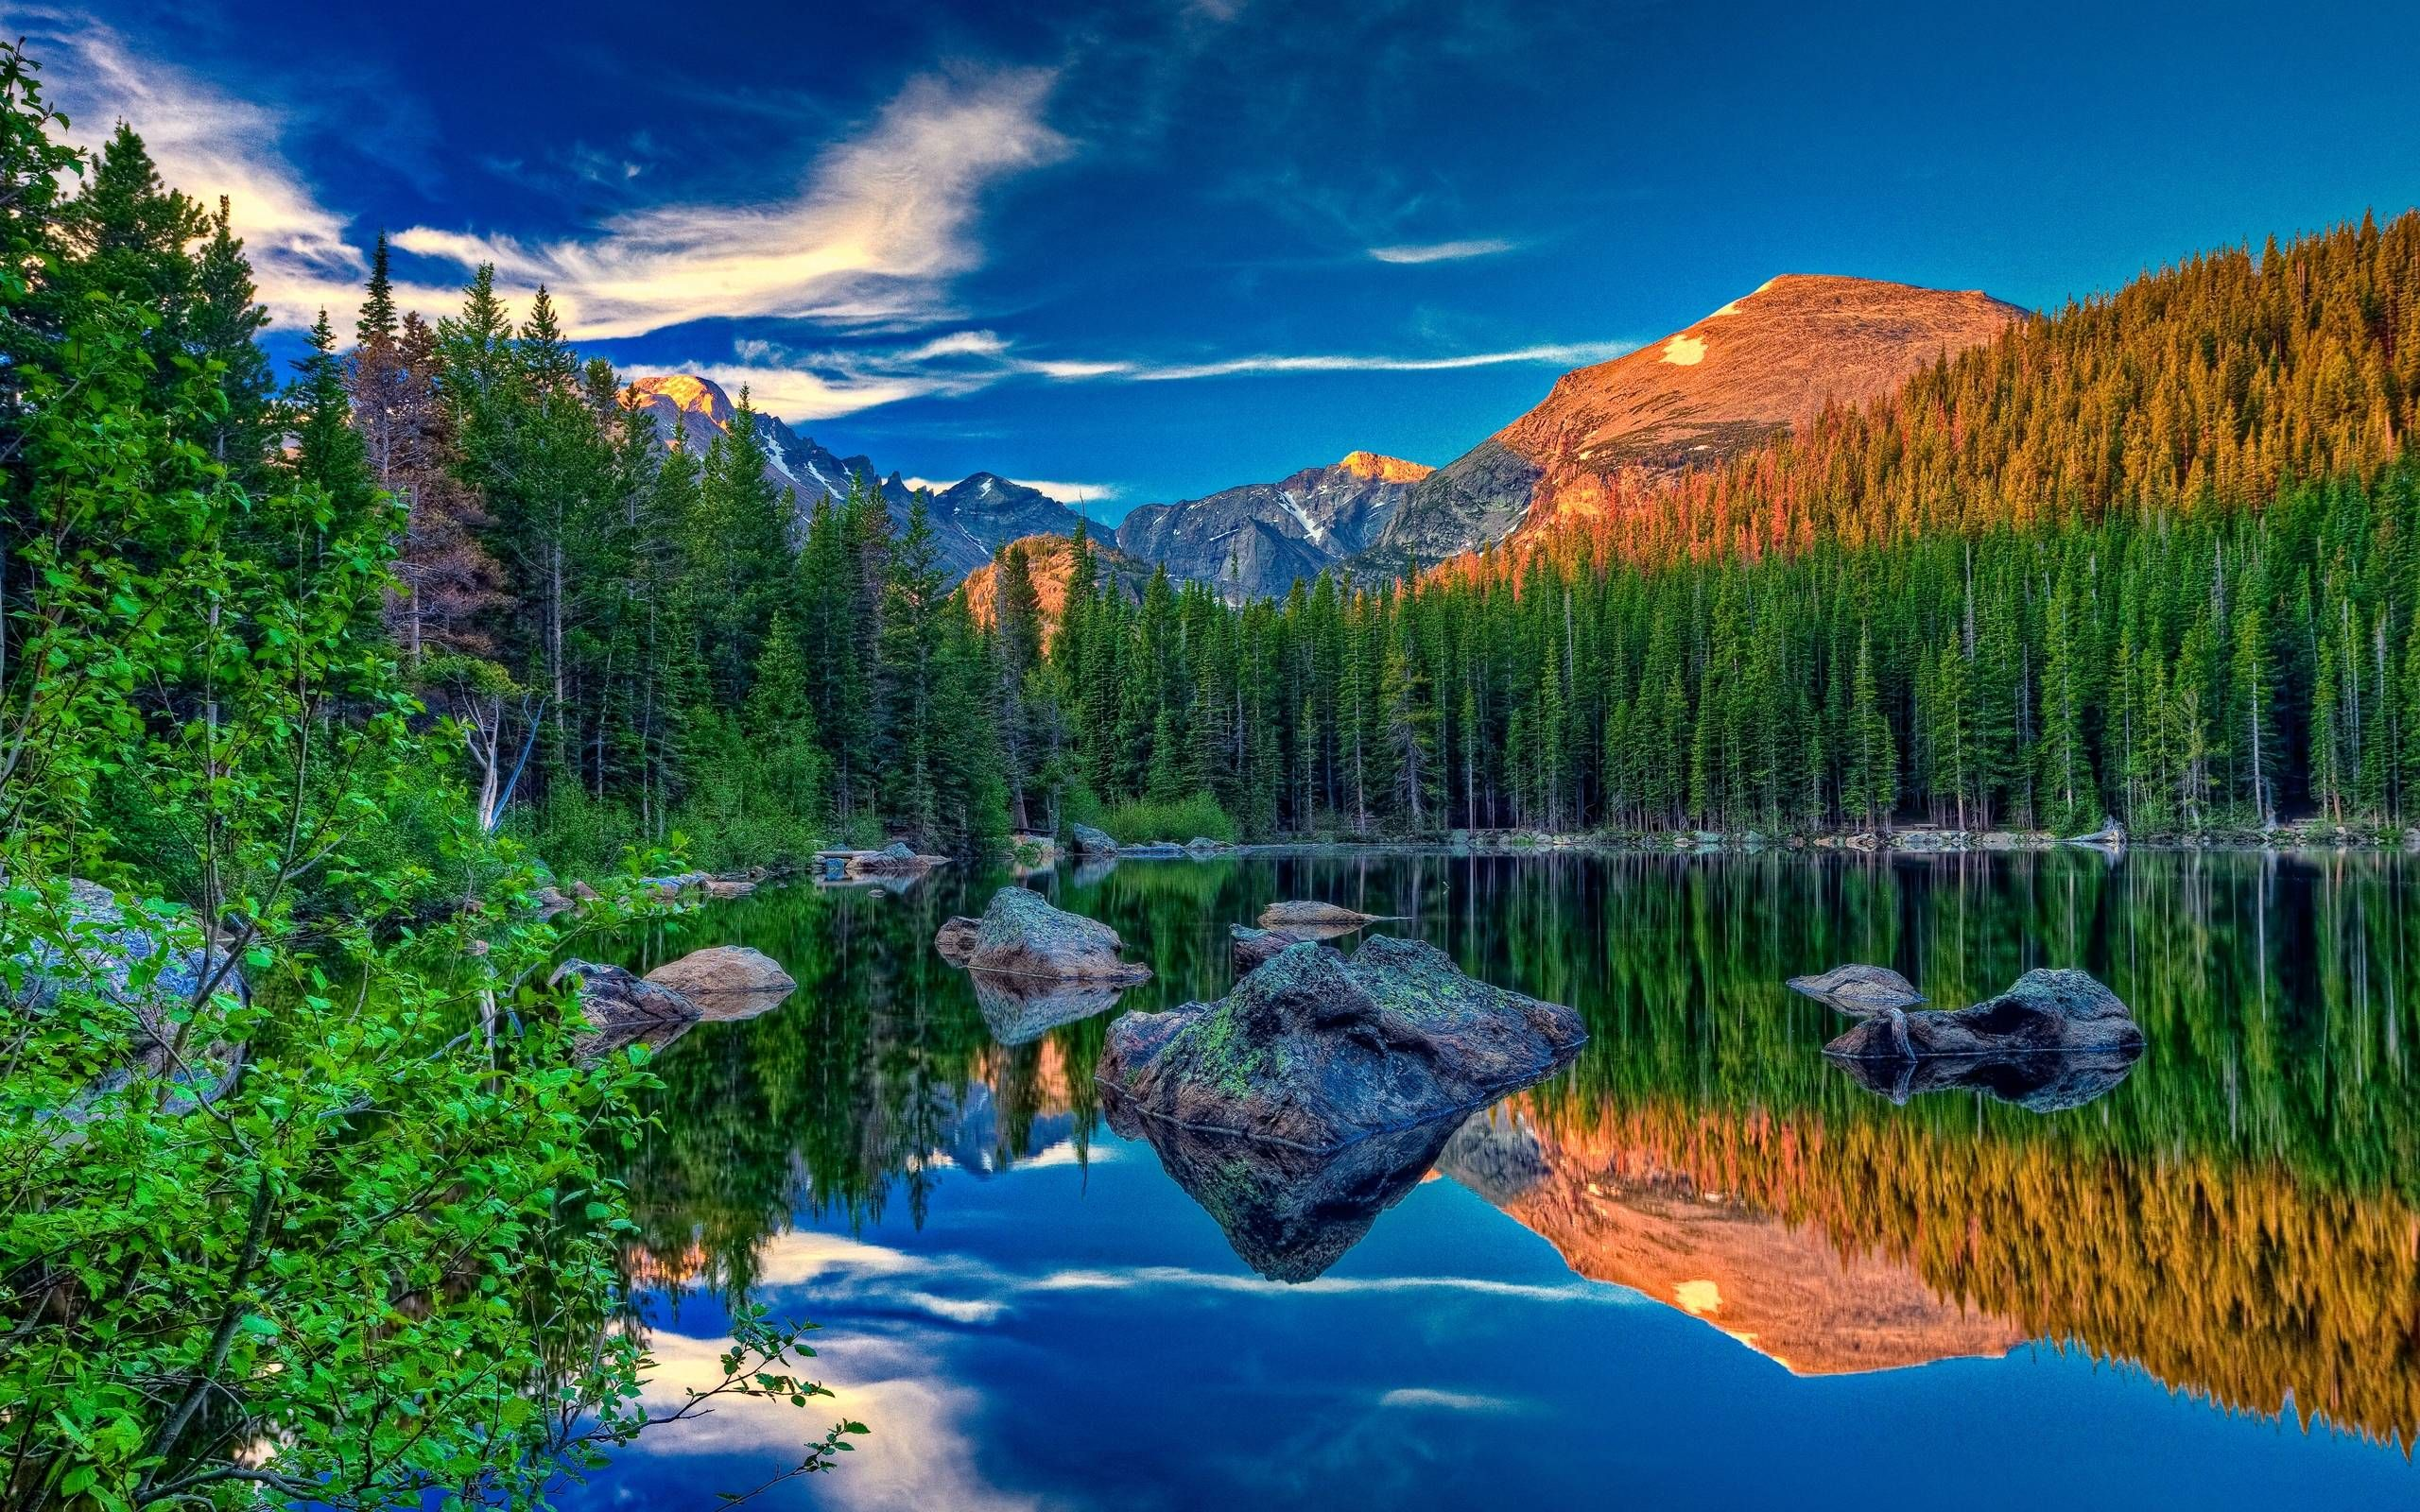 New Nature Images Wallpapers 2019 Free Download Beautiful Places Beauty Places Nature